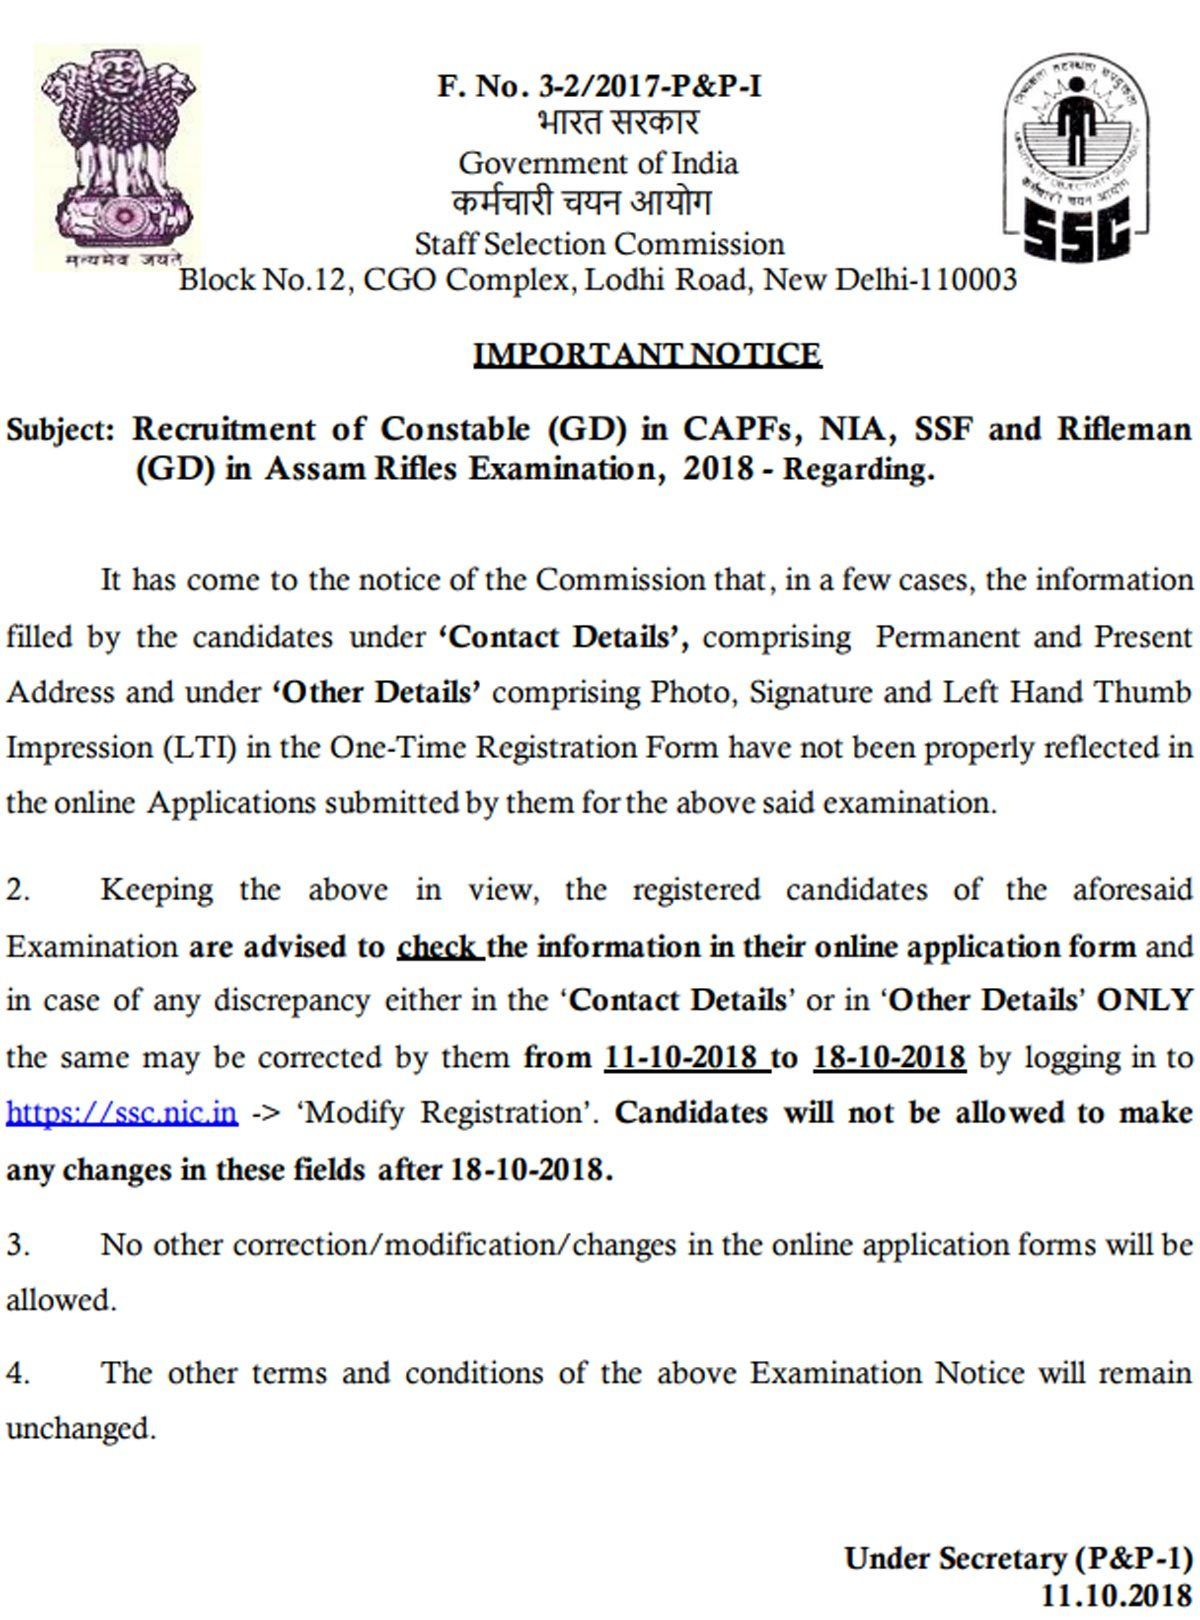 Trending Ssc Gd Constable 2018 Application Correction Window